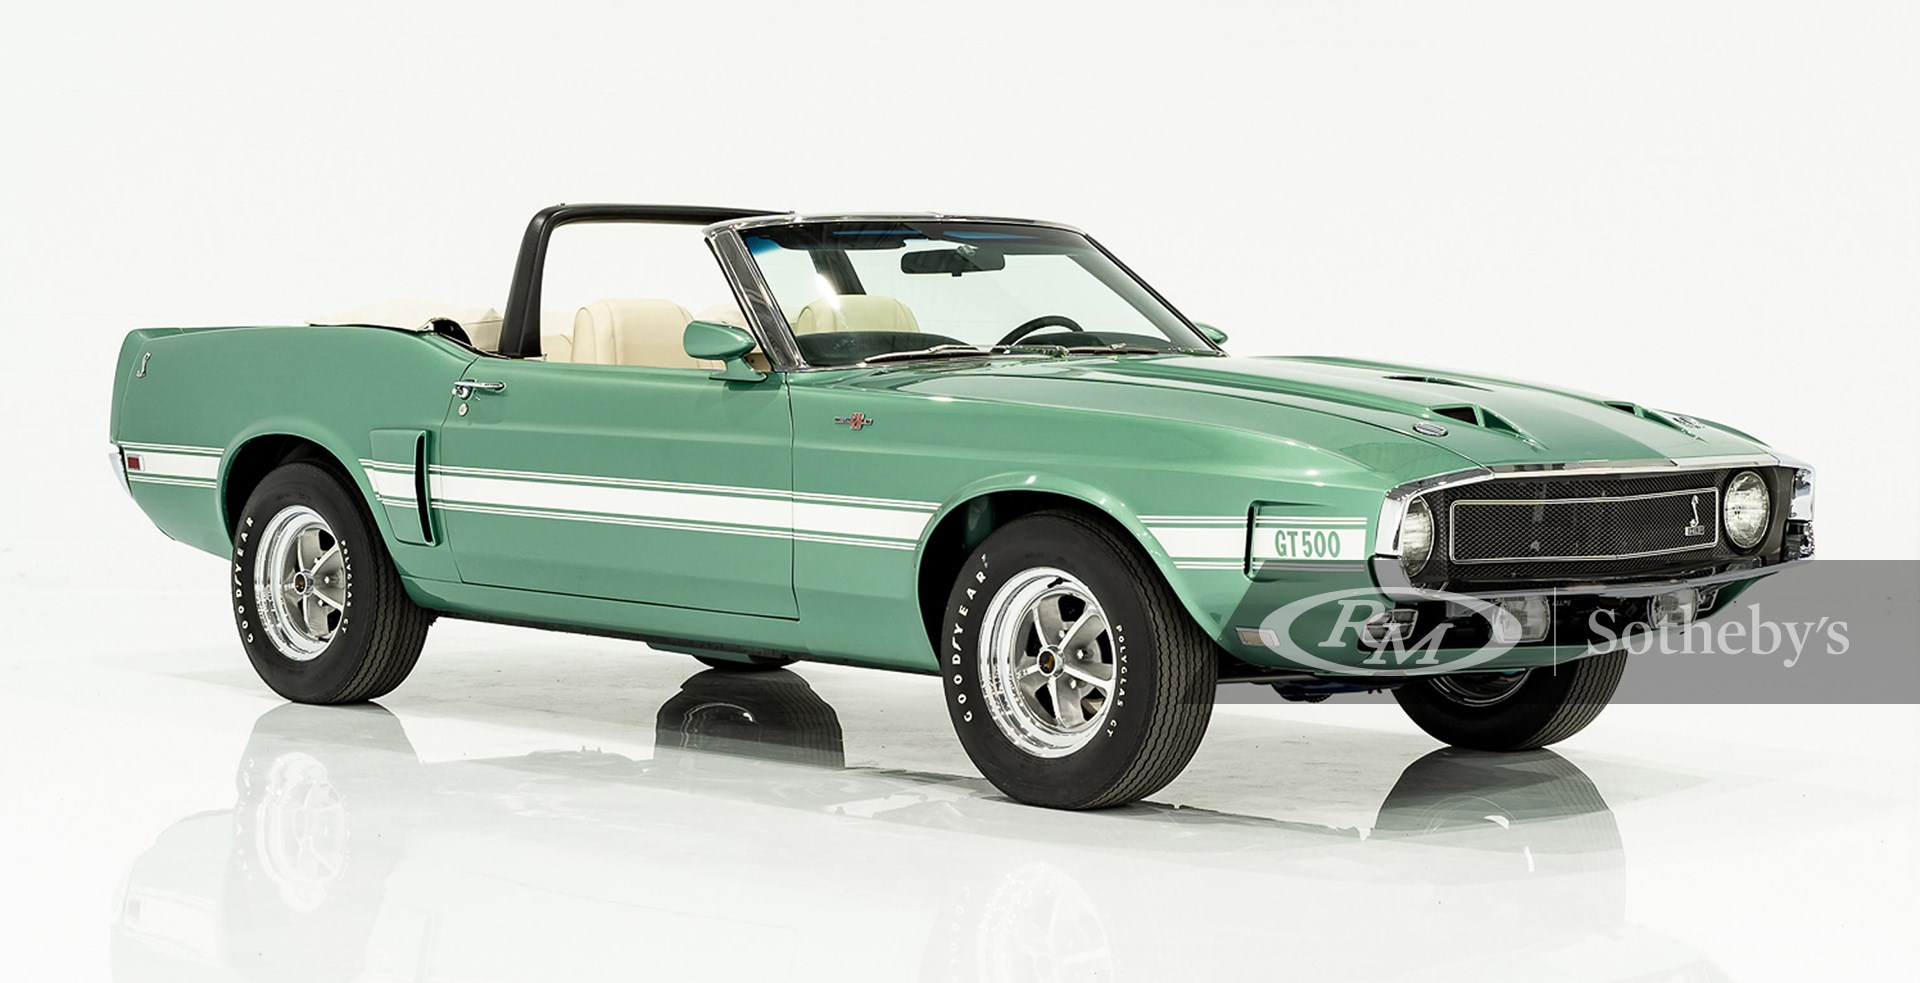 1969 Shelby GT500 Convertible available at RM Sotheby's Online Only Open Roads April Auction 2021